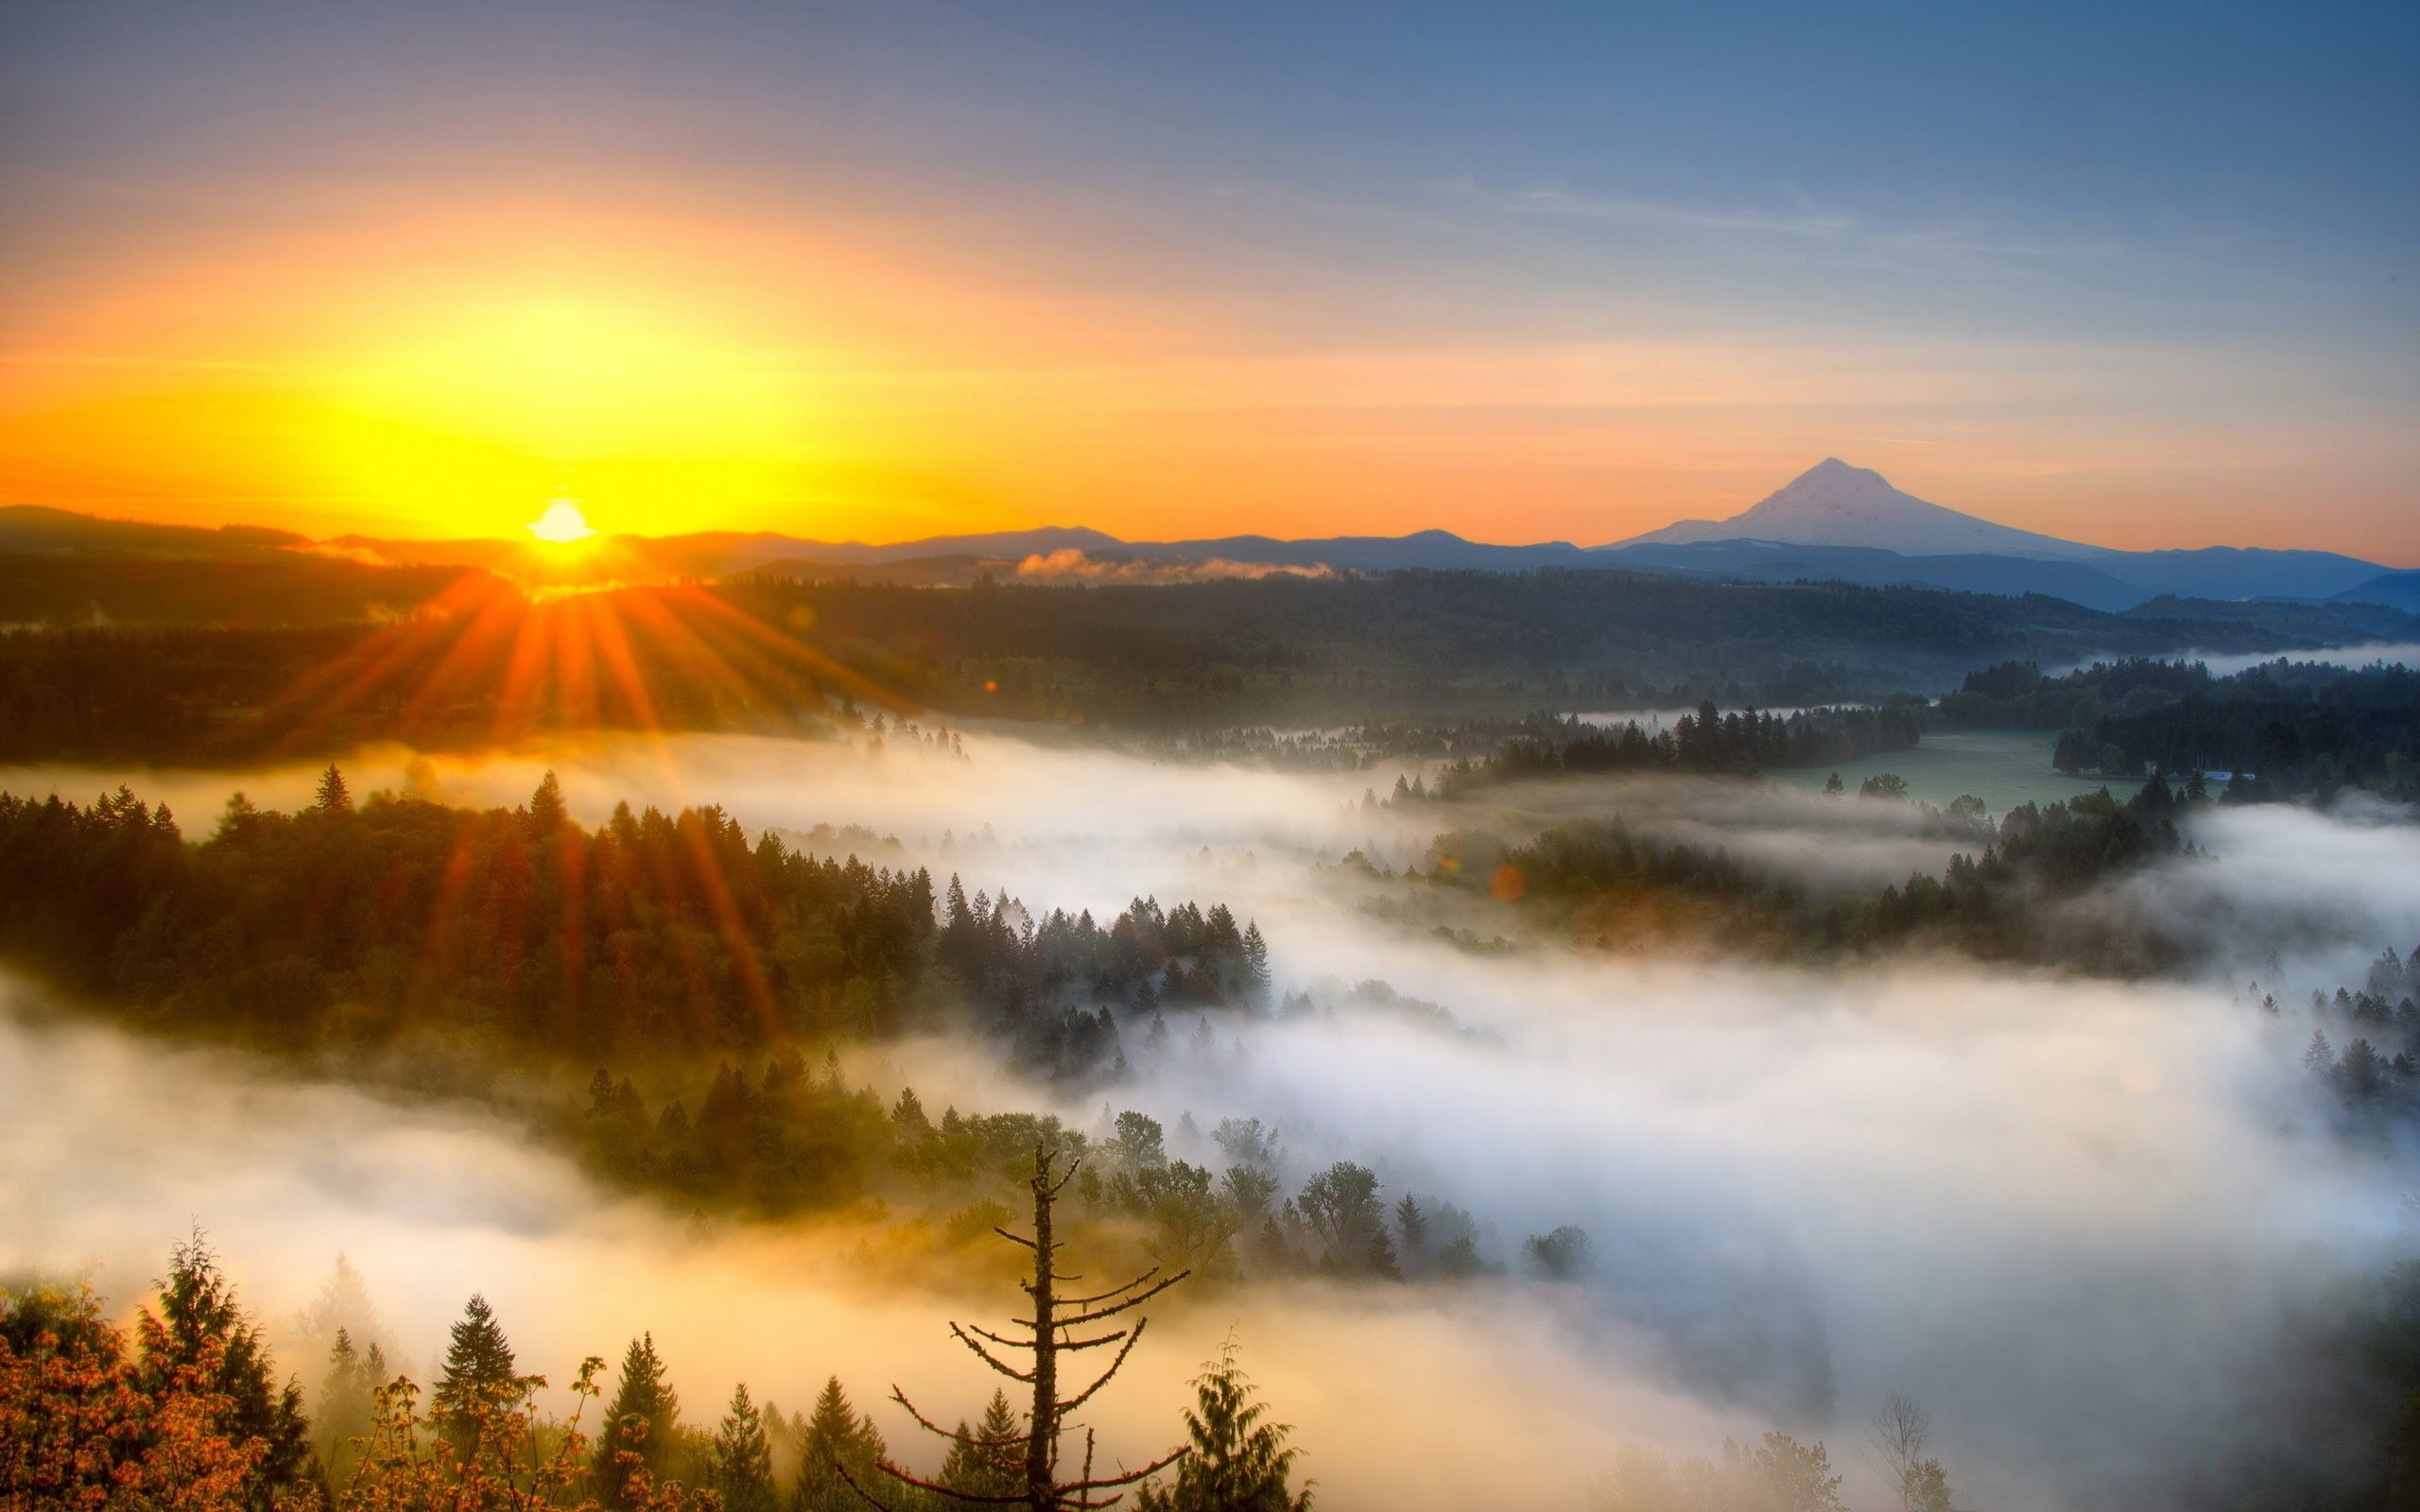 Morning Sunrise | Morning mist mountain sunrise Wallpaper ...